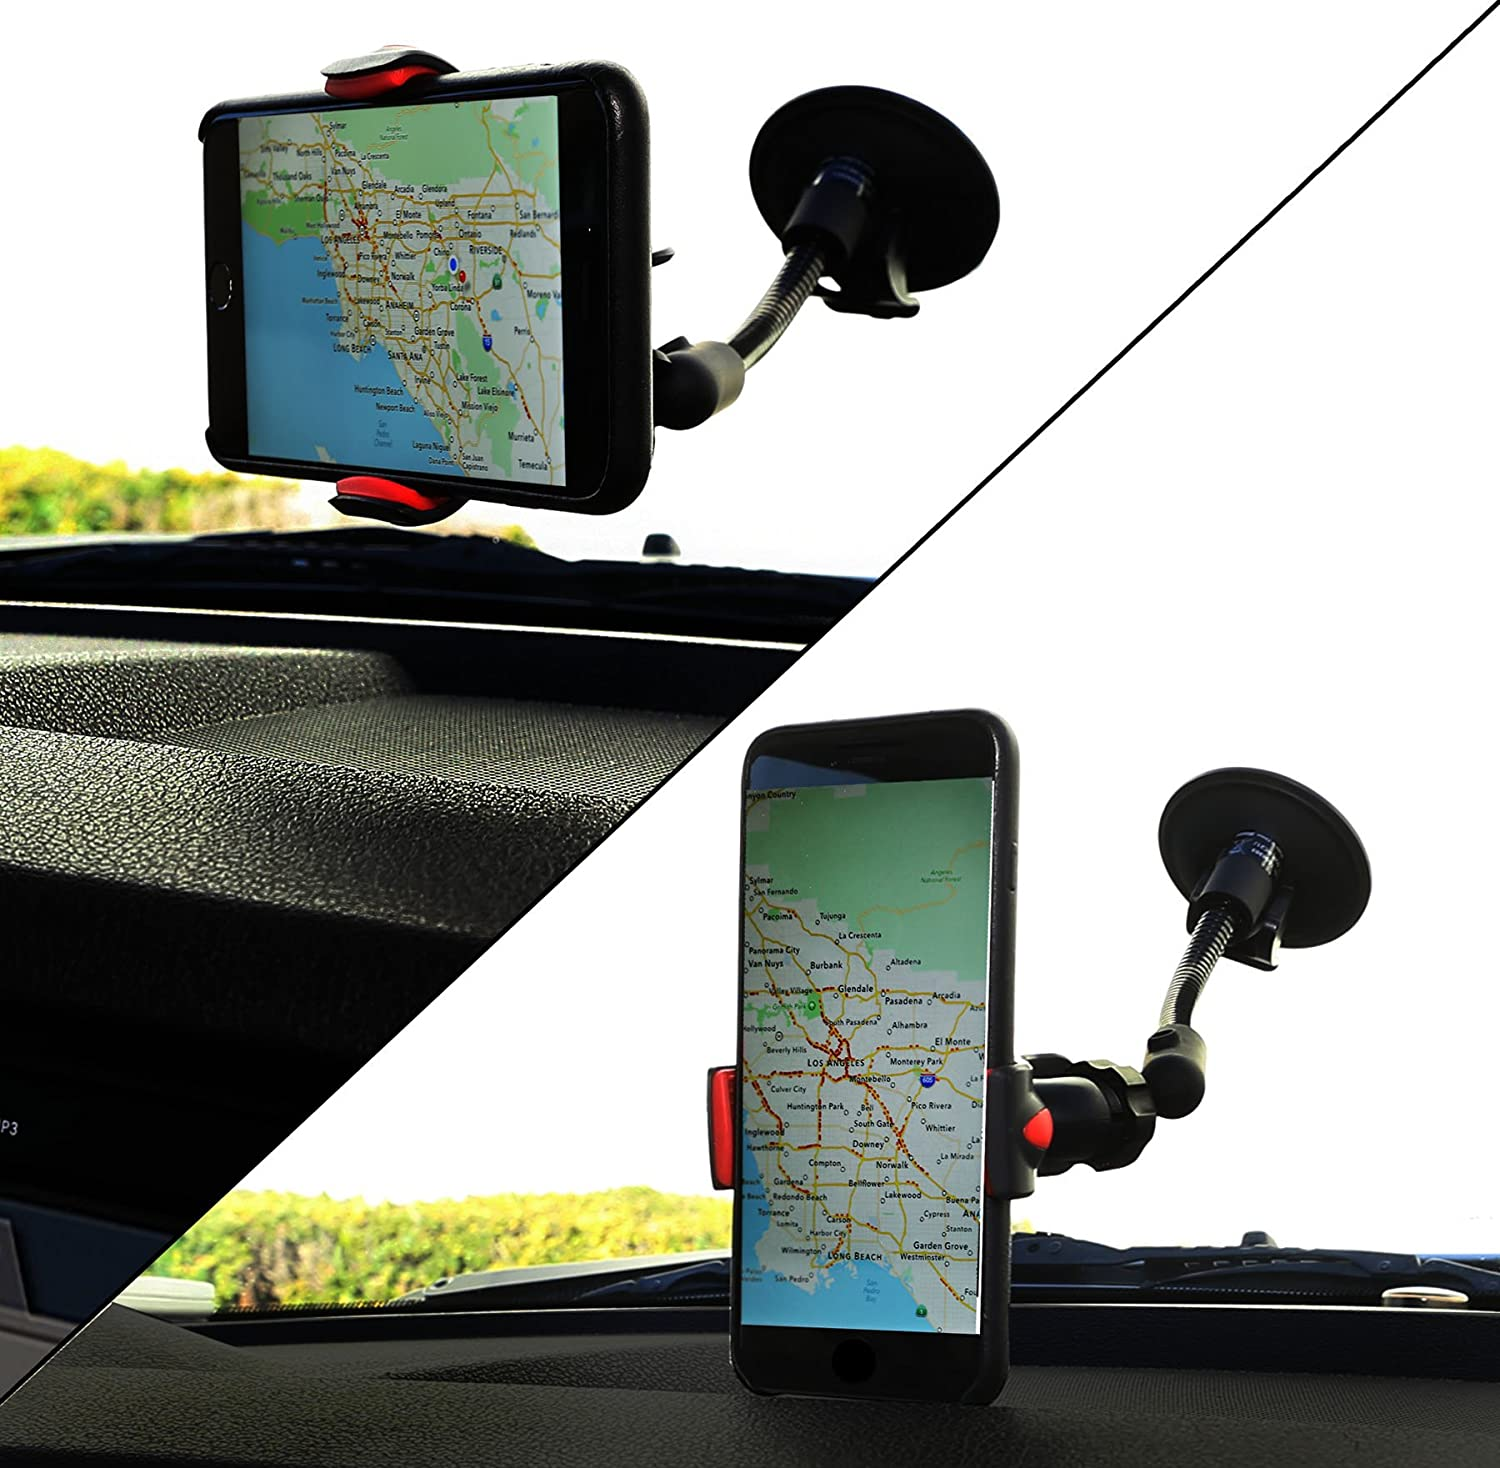 Connectland Universal Windshield Glass Surface Clamp 4 Inch Arm Car Mount Cradle Holder for Phones CL-ACC62060 Syba